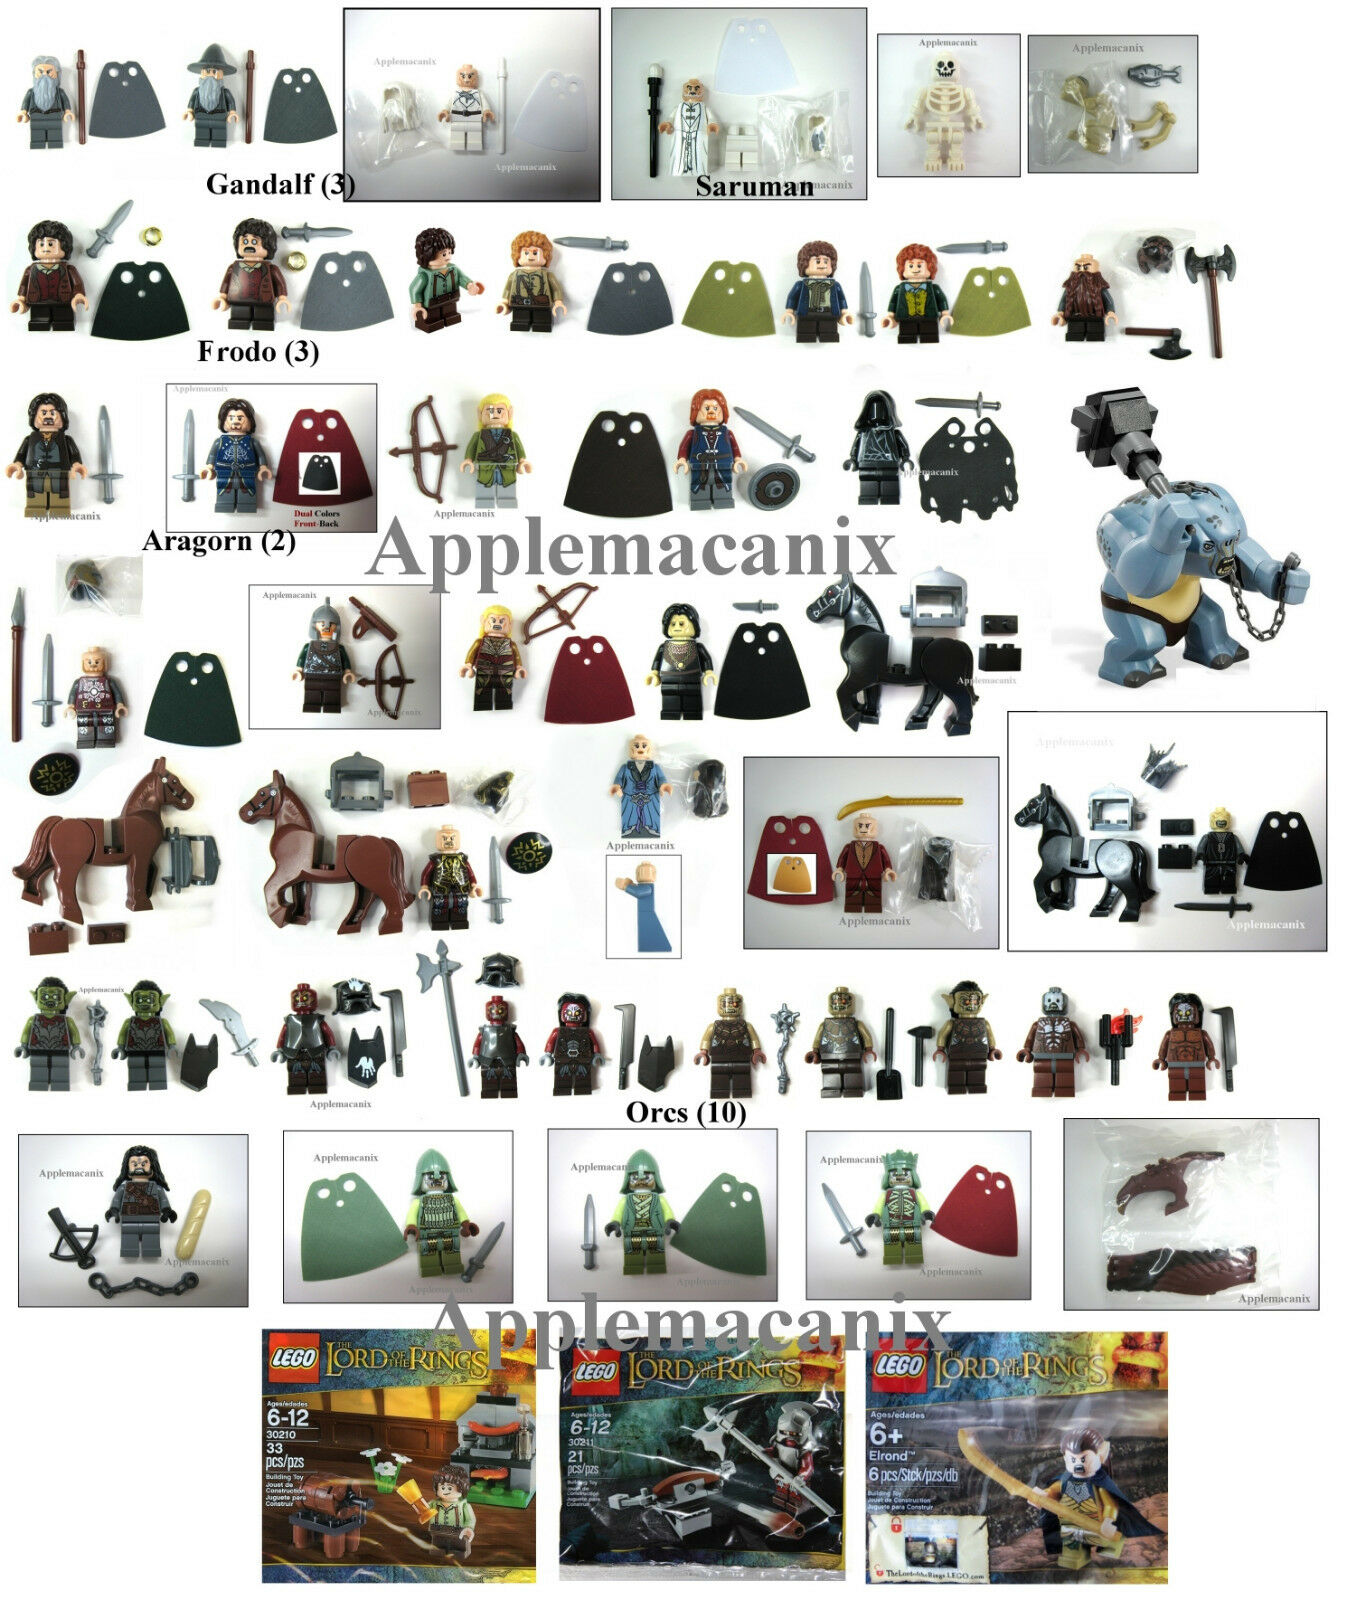 NEW LEGO Lord of the Rings *COMPLETE COLLECTION* 43+6 Minifigures Minifig LOTR